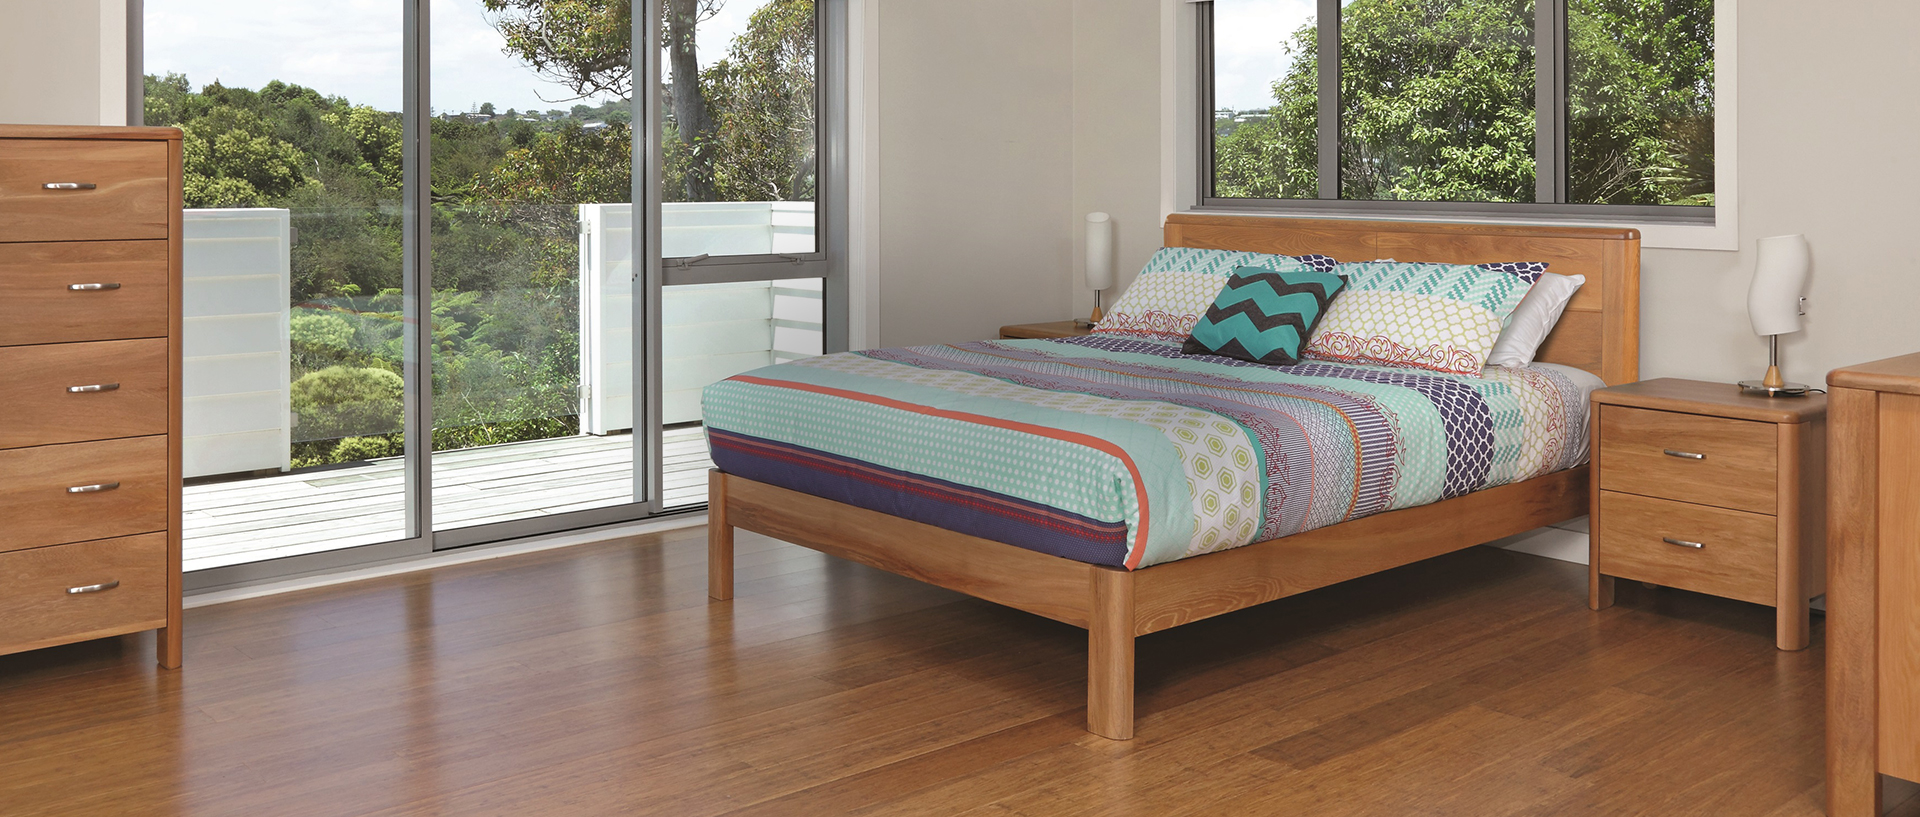 bedroom furniture nz cheap bedroom furniture nz beds